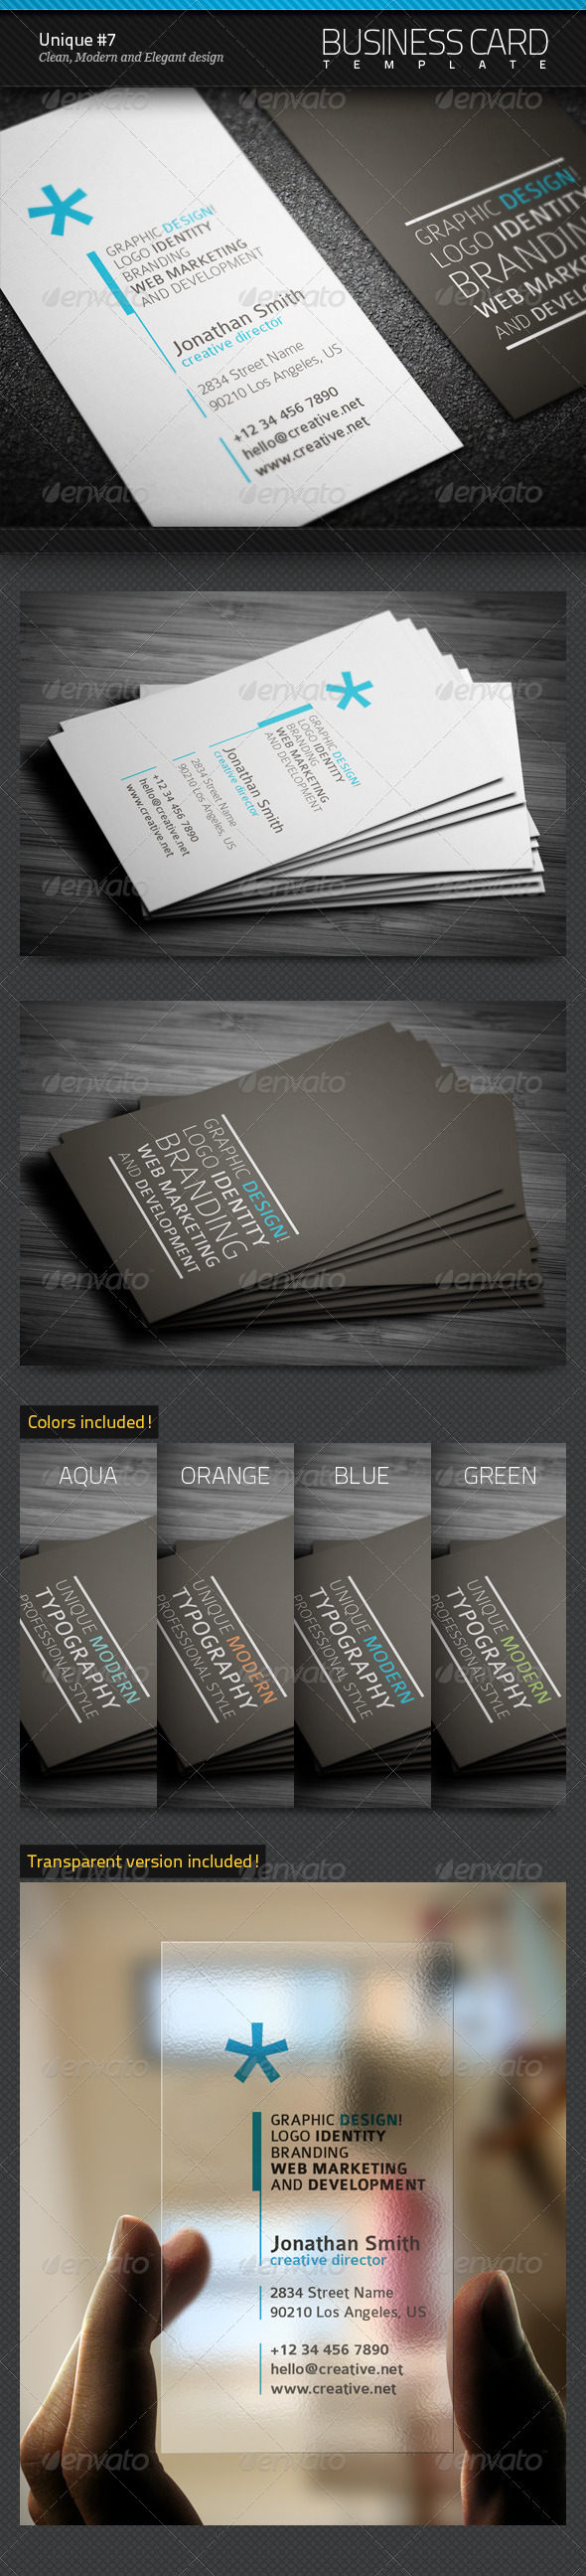 GraphicRiver Unique Business Card #7 5560559